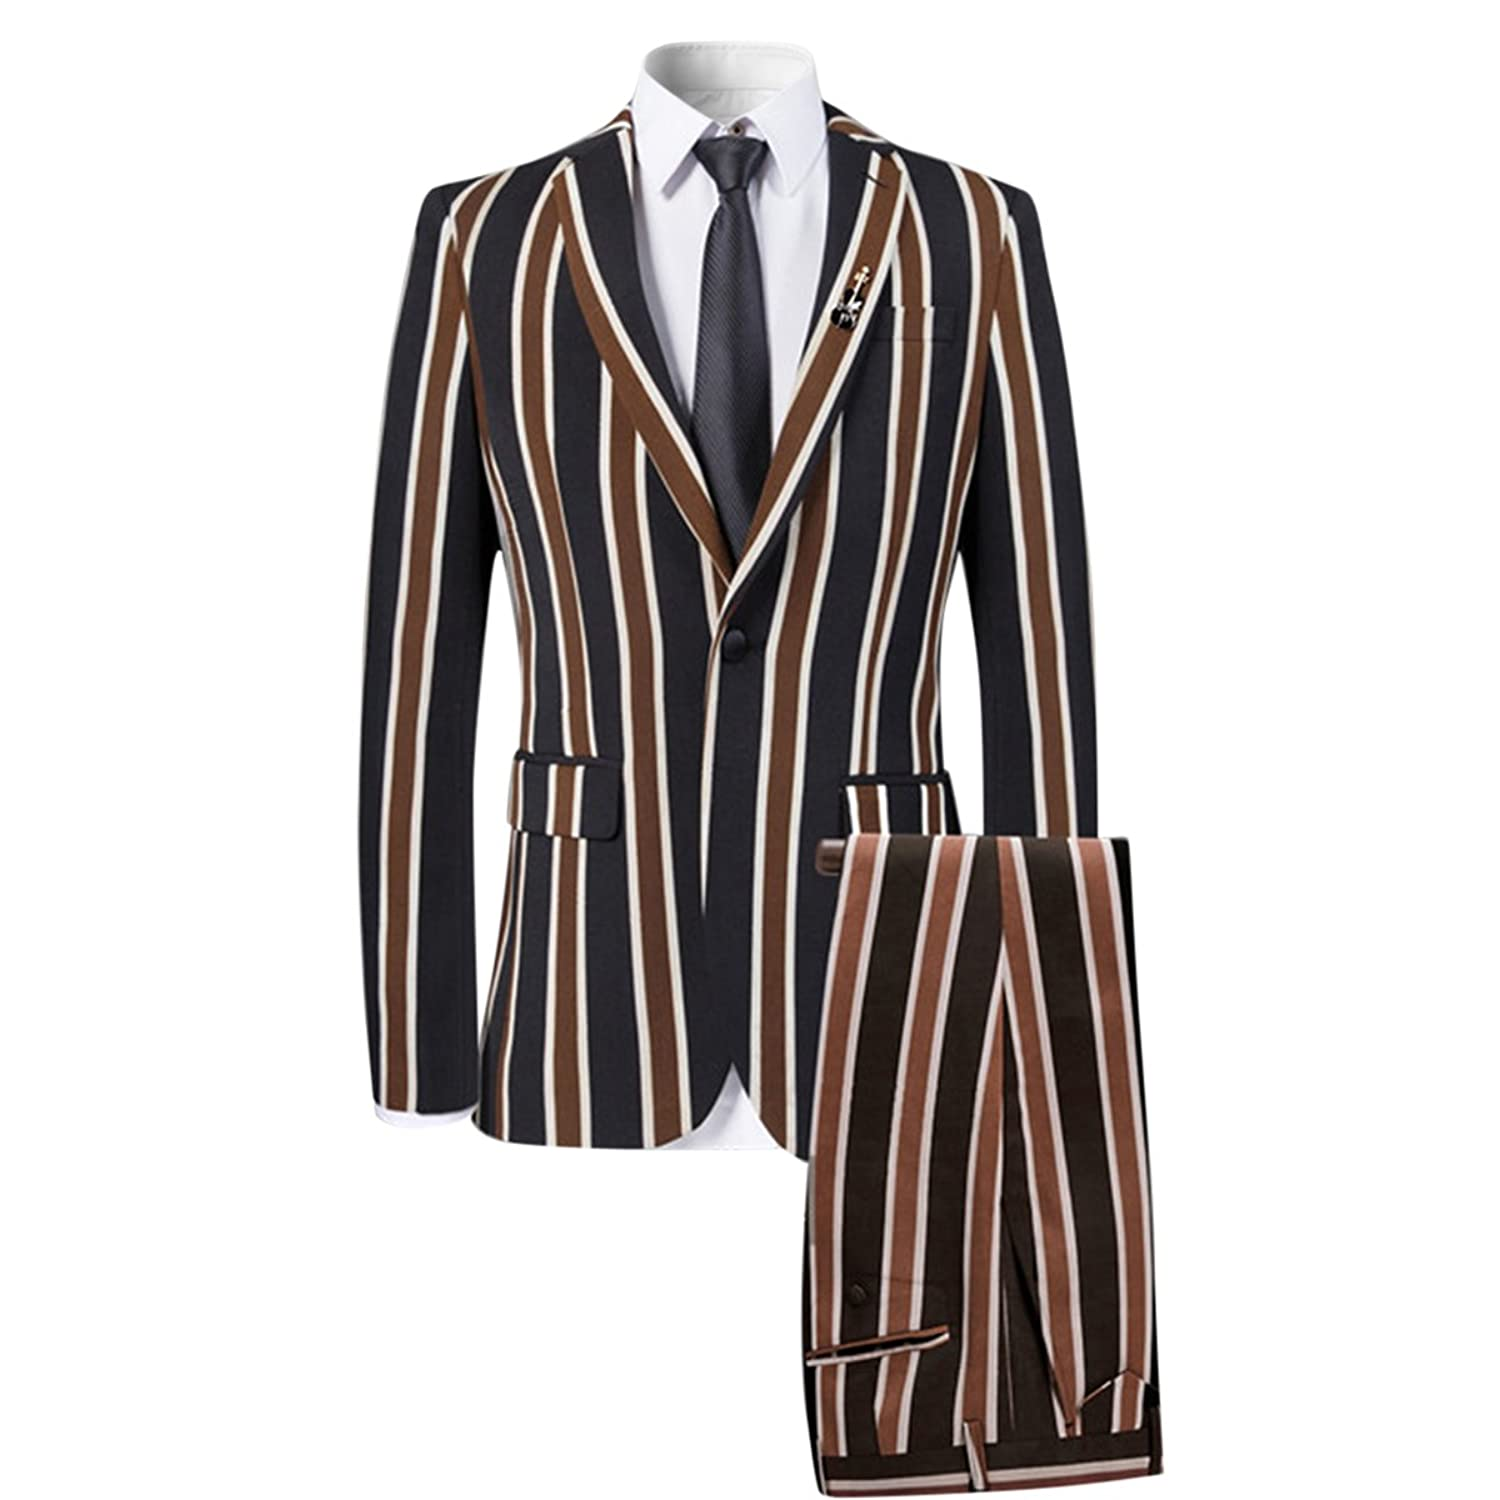 1960s Mens Suits | 70s Mens Disco Suits Colored Striped 3 Piece Suit Slim Fit Tuxedo Blazer Jacket Pants Vest Set $105.99 AT vintagedancer.com